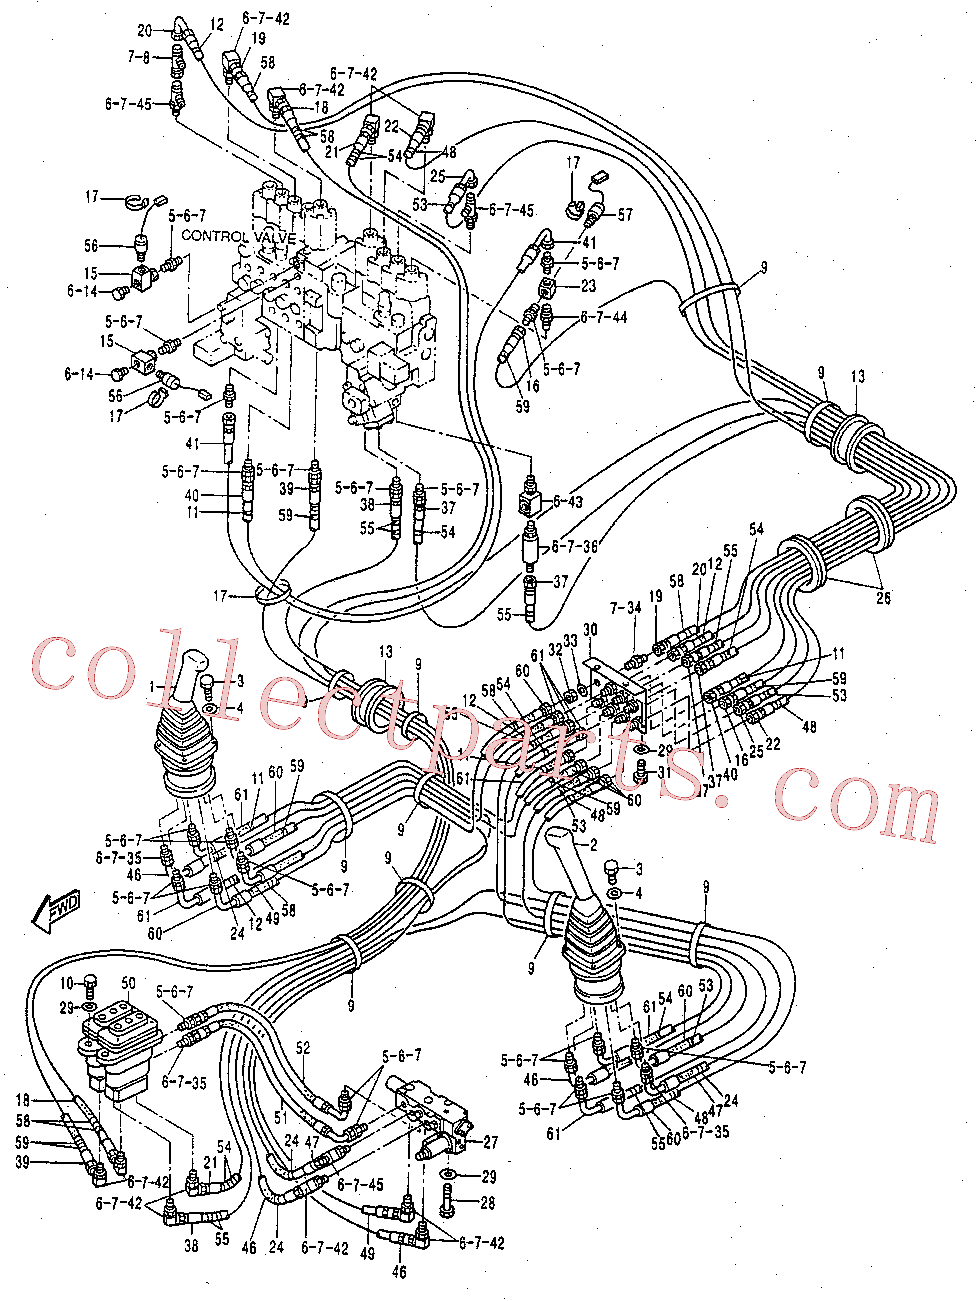 CAT 123-2148 for 320B L Excavator(EXC) hydraulic system 119-2390 Assembly